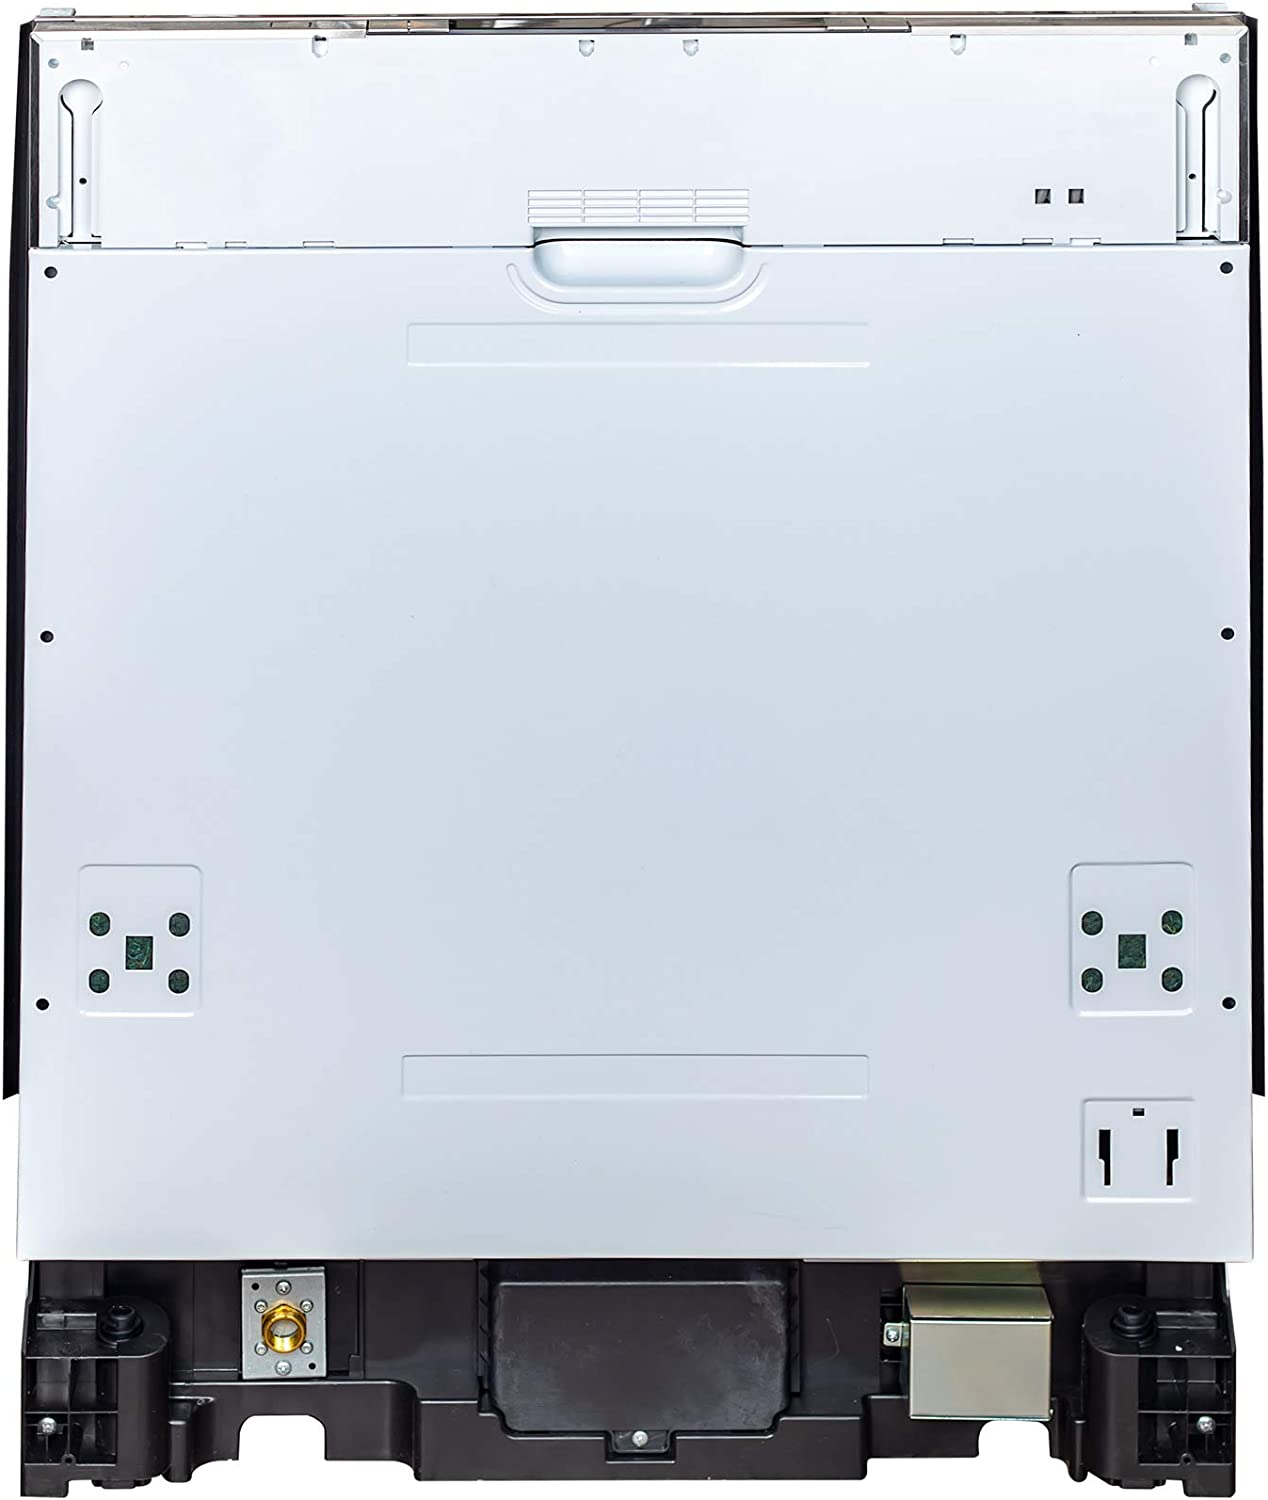 24 in. Top Control Dishwasher in Custom Panel Ready with Stainless Steel Tub 71axAdO75sLSL1500_